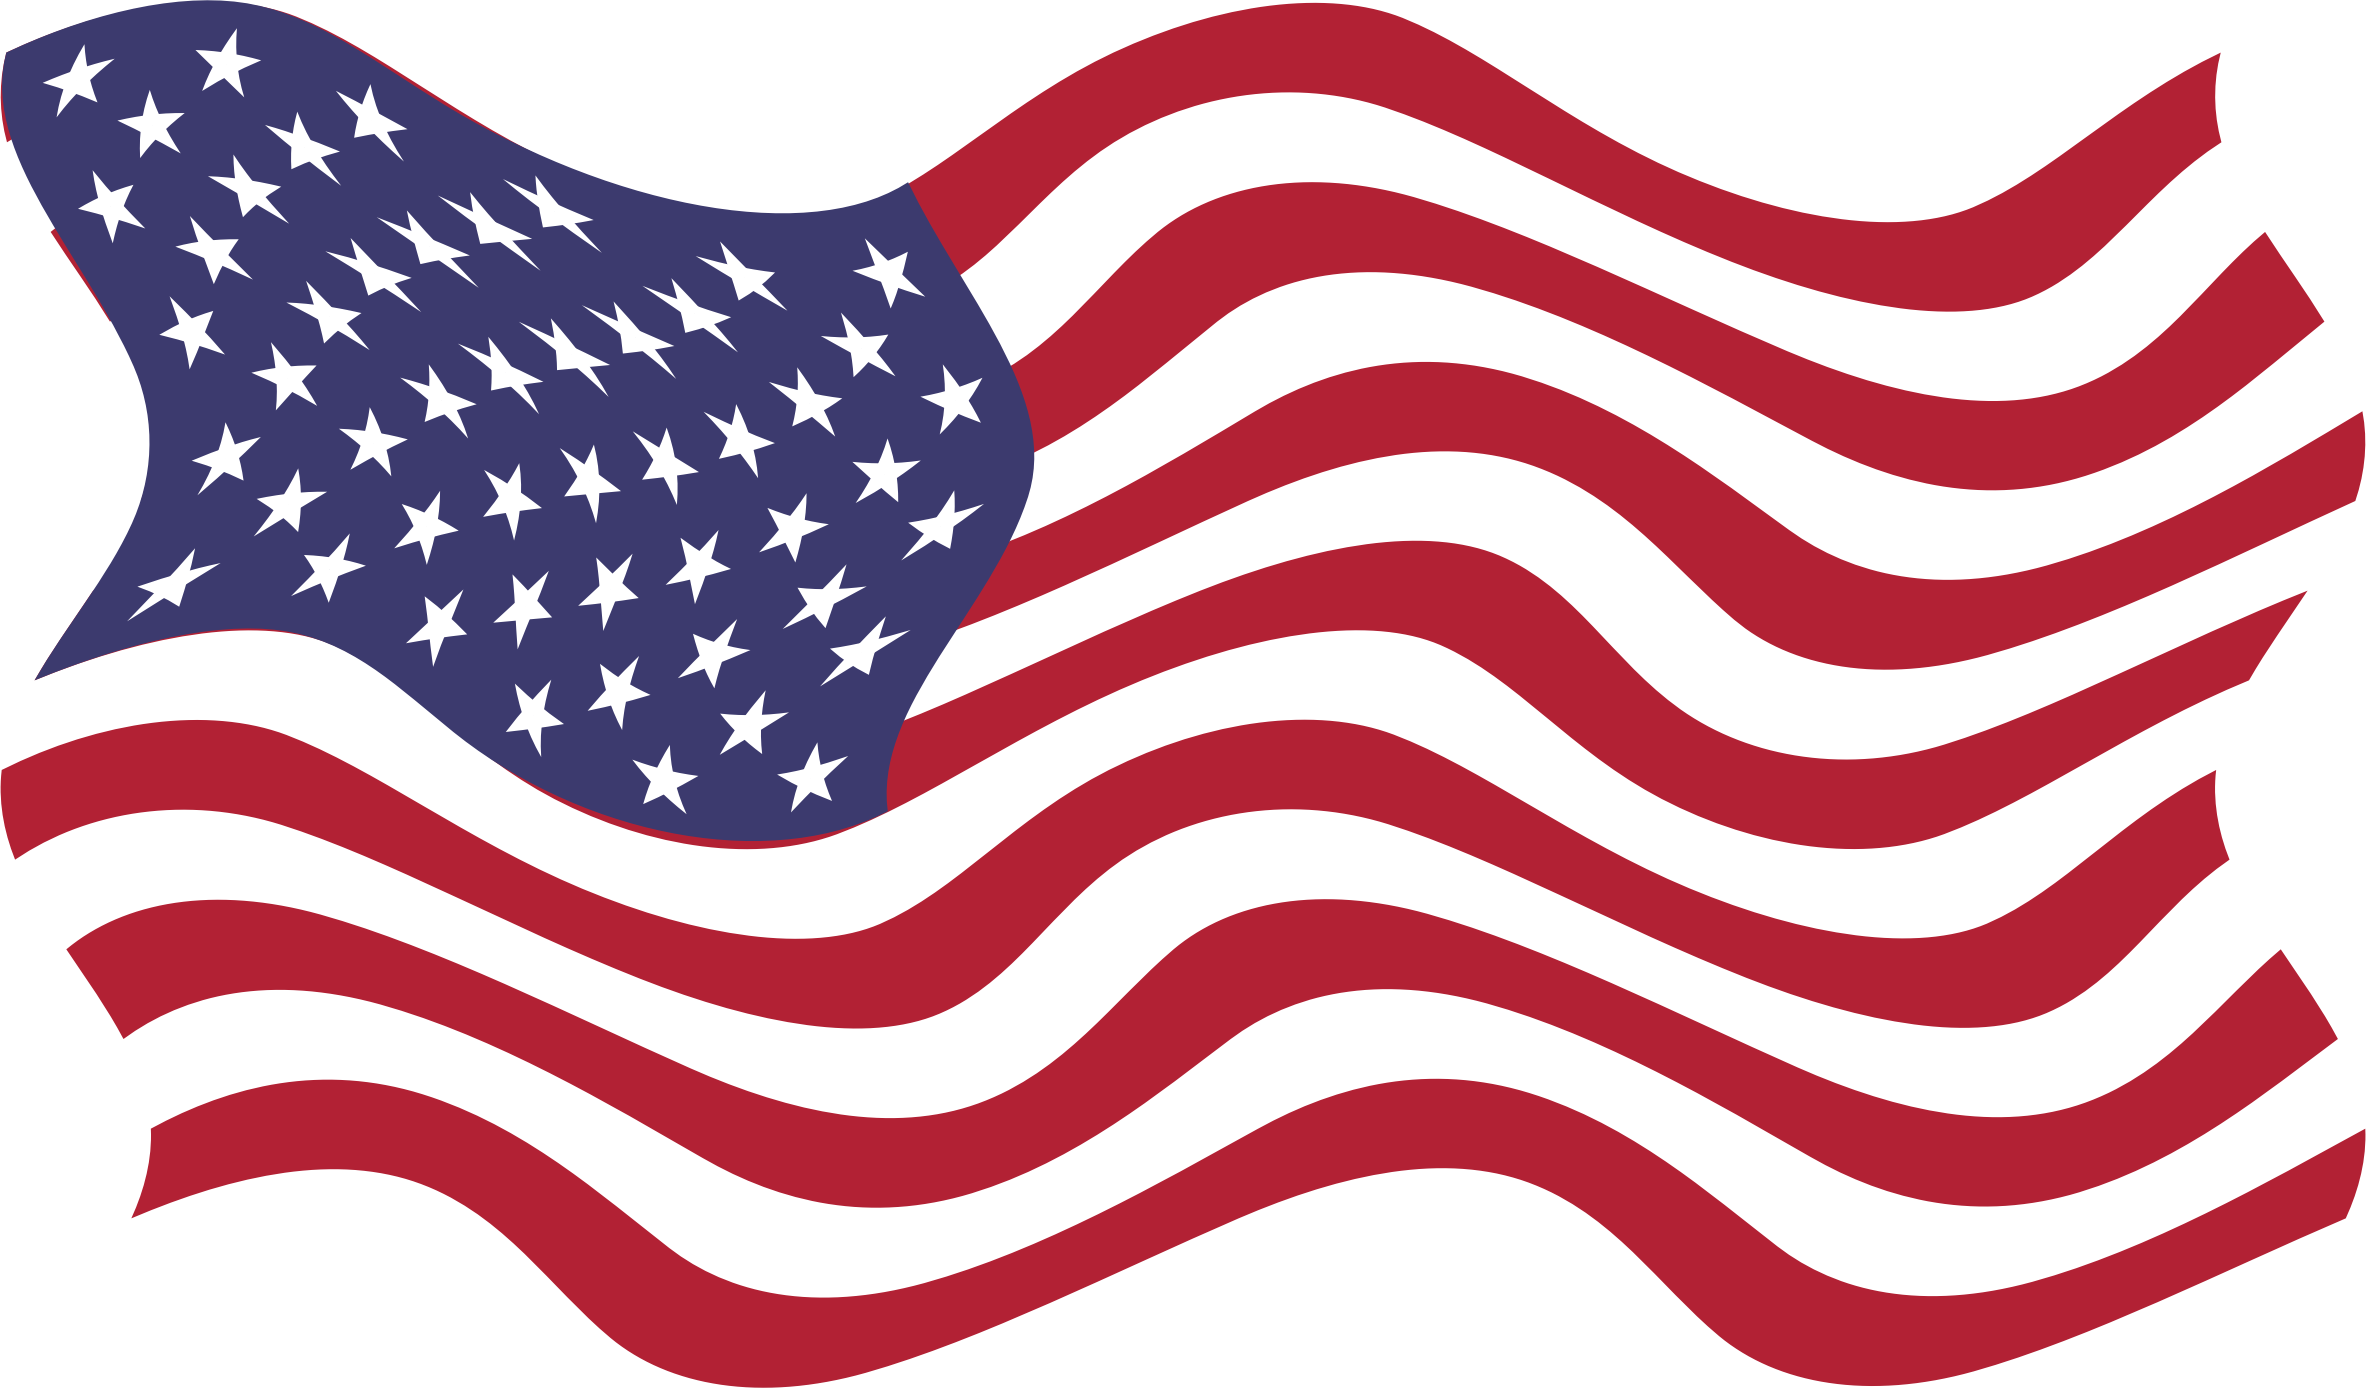 Images of spacehero clipart. American flag vector png